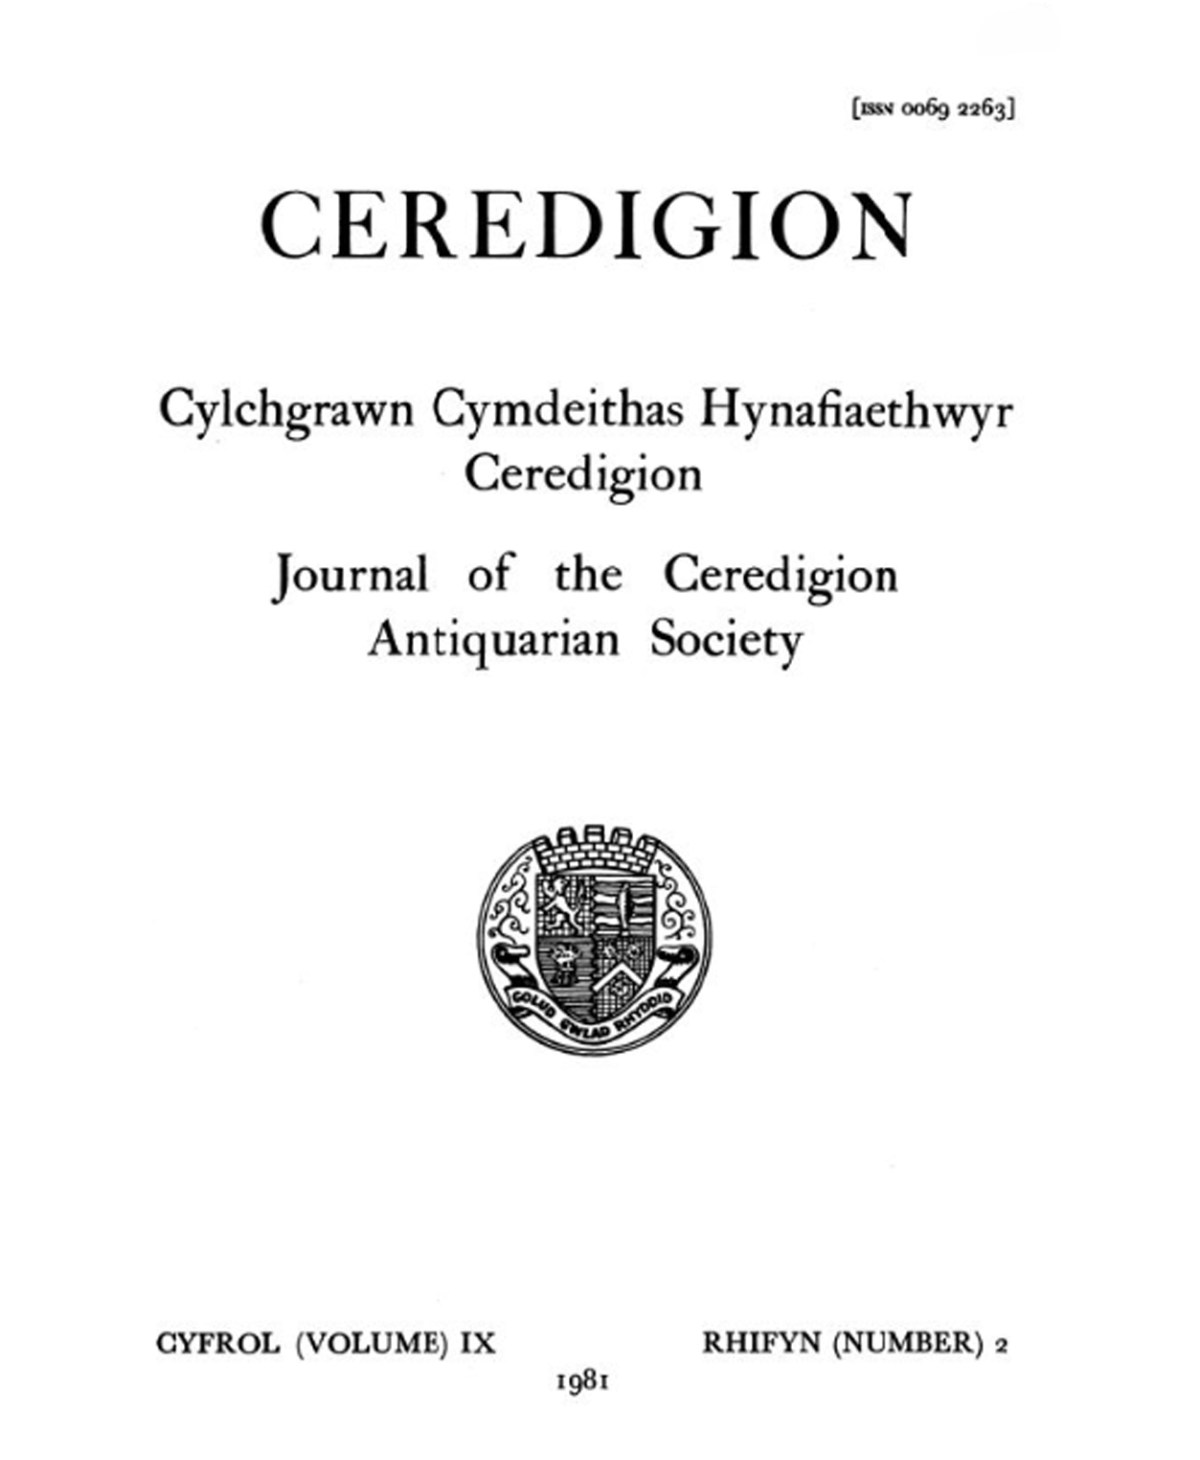 Ceredigion – Journal of the Cardiganshire Antiquarian Society, 1981 Vol IX No 2